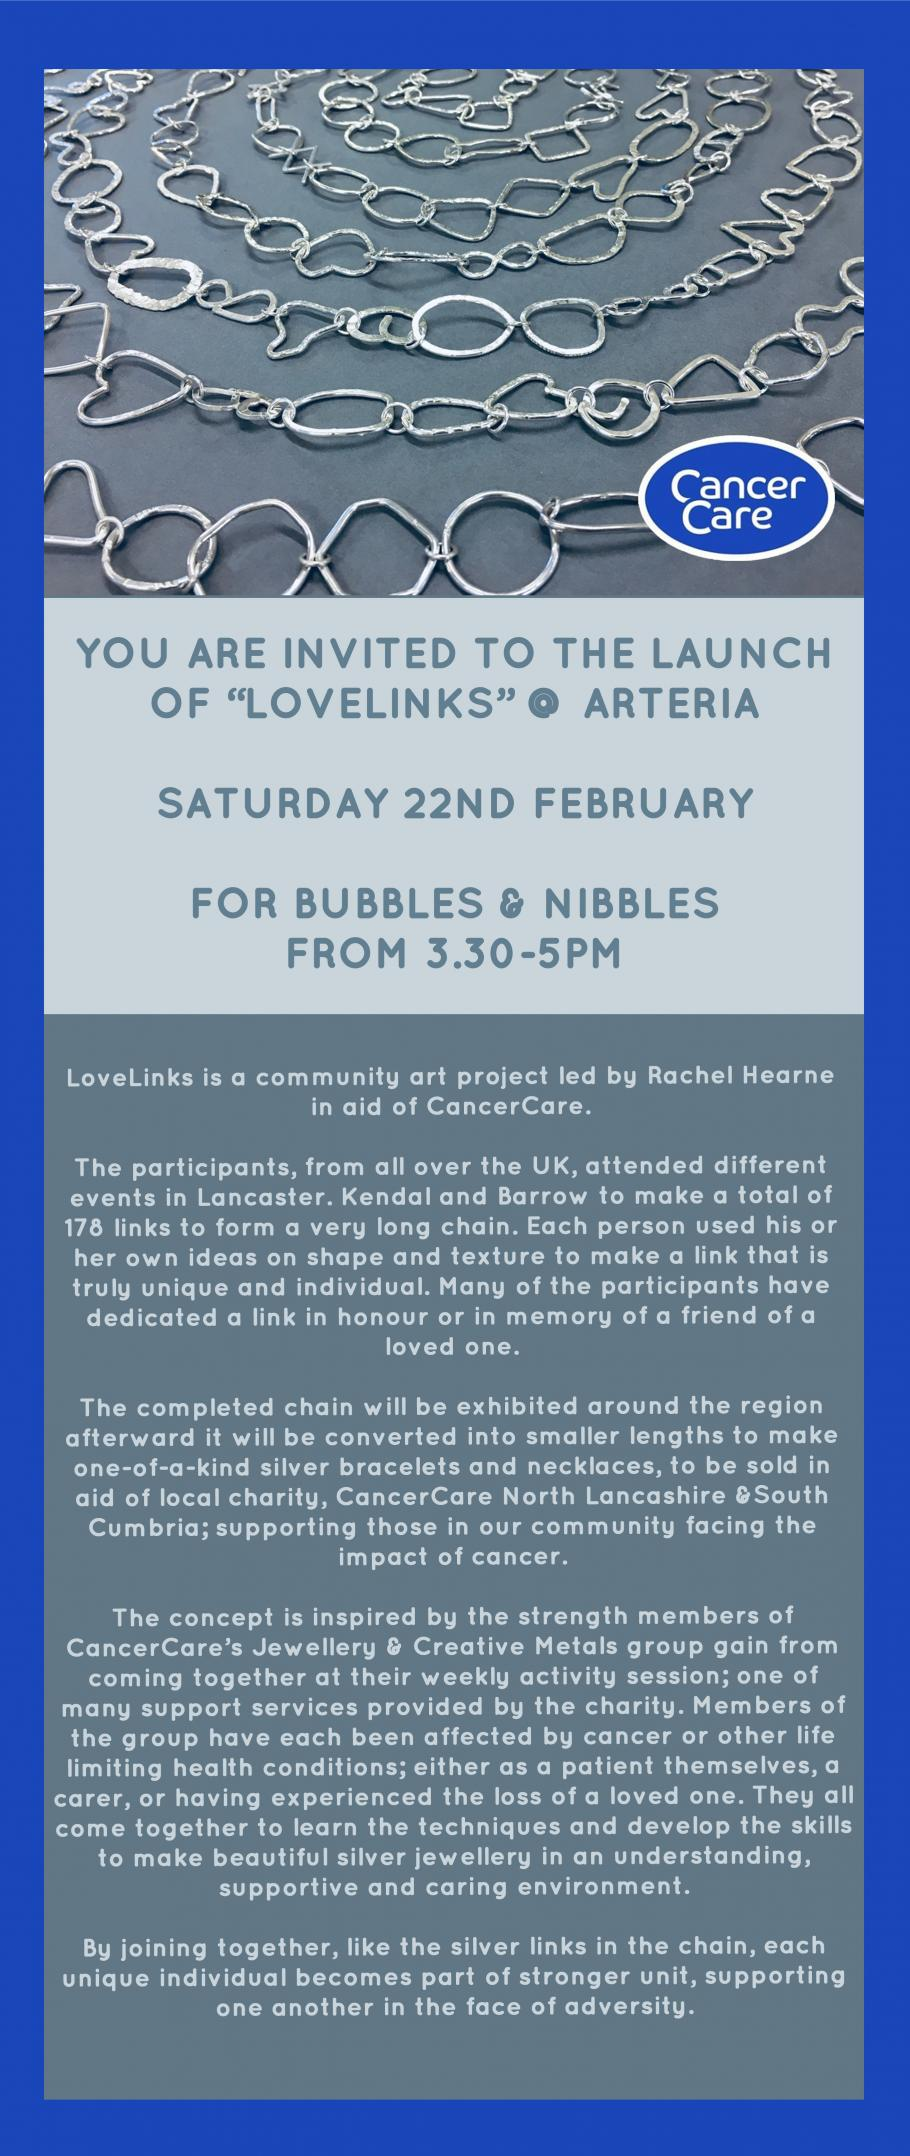 INVITATION TO THE LAUNCH OF